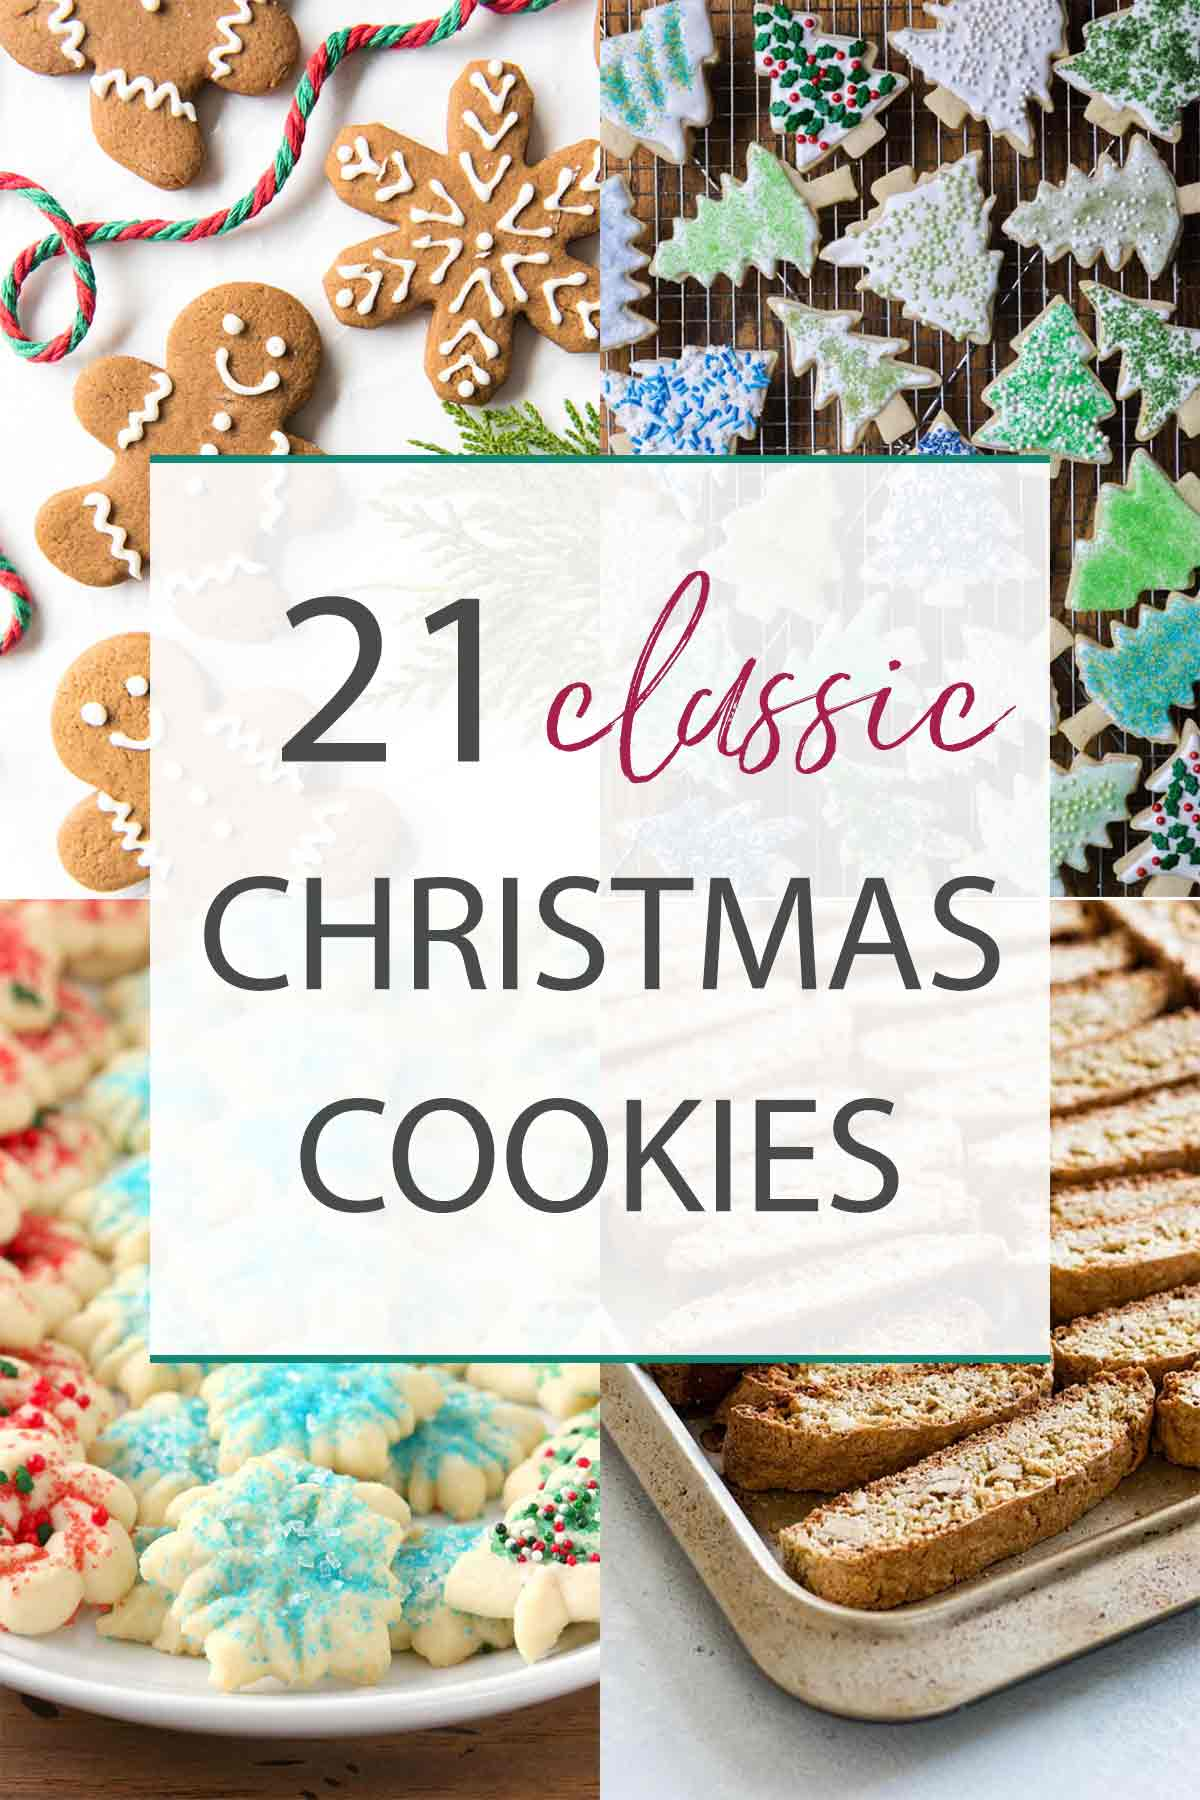 cookies photo collage